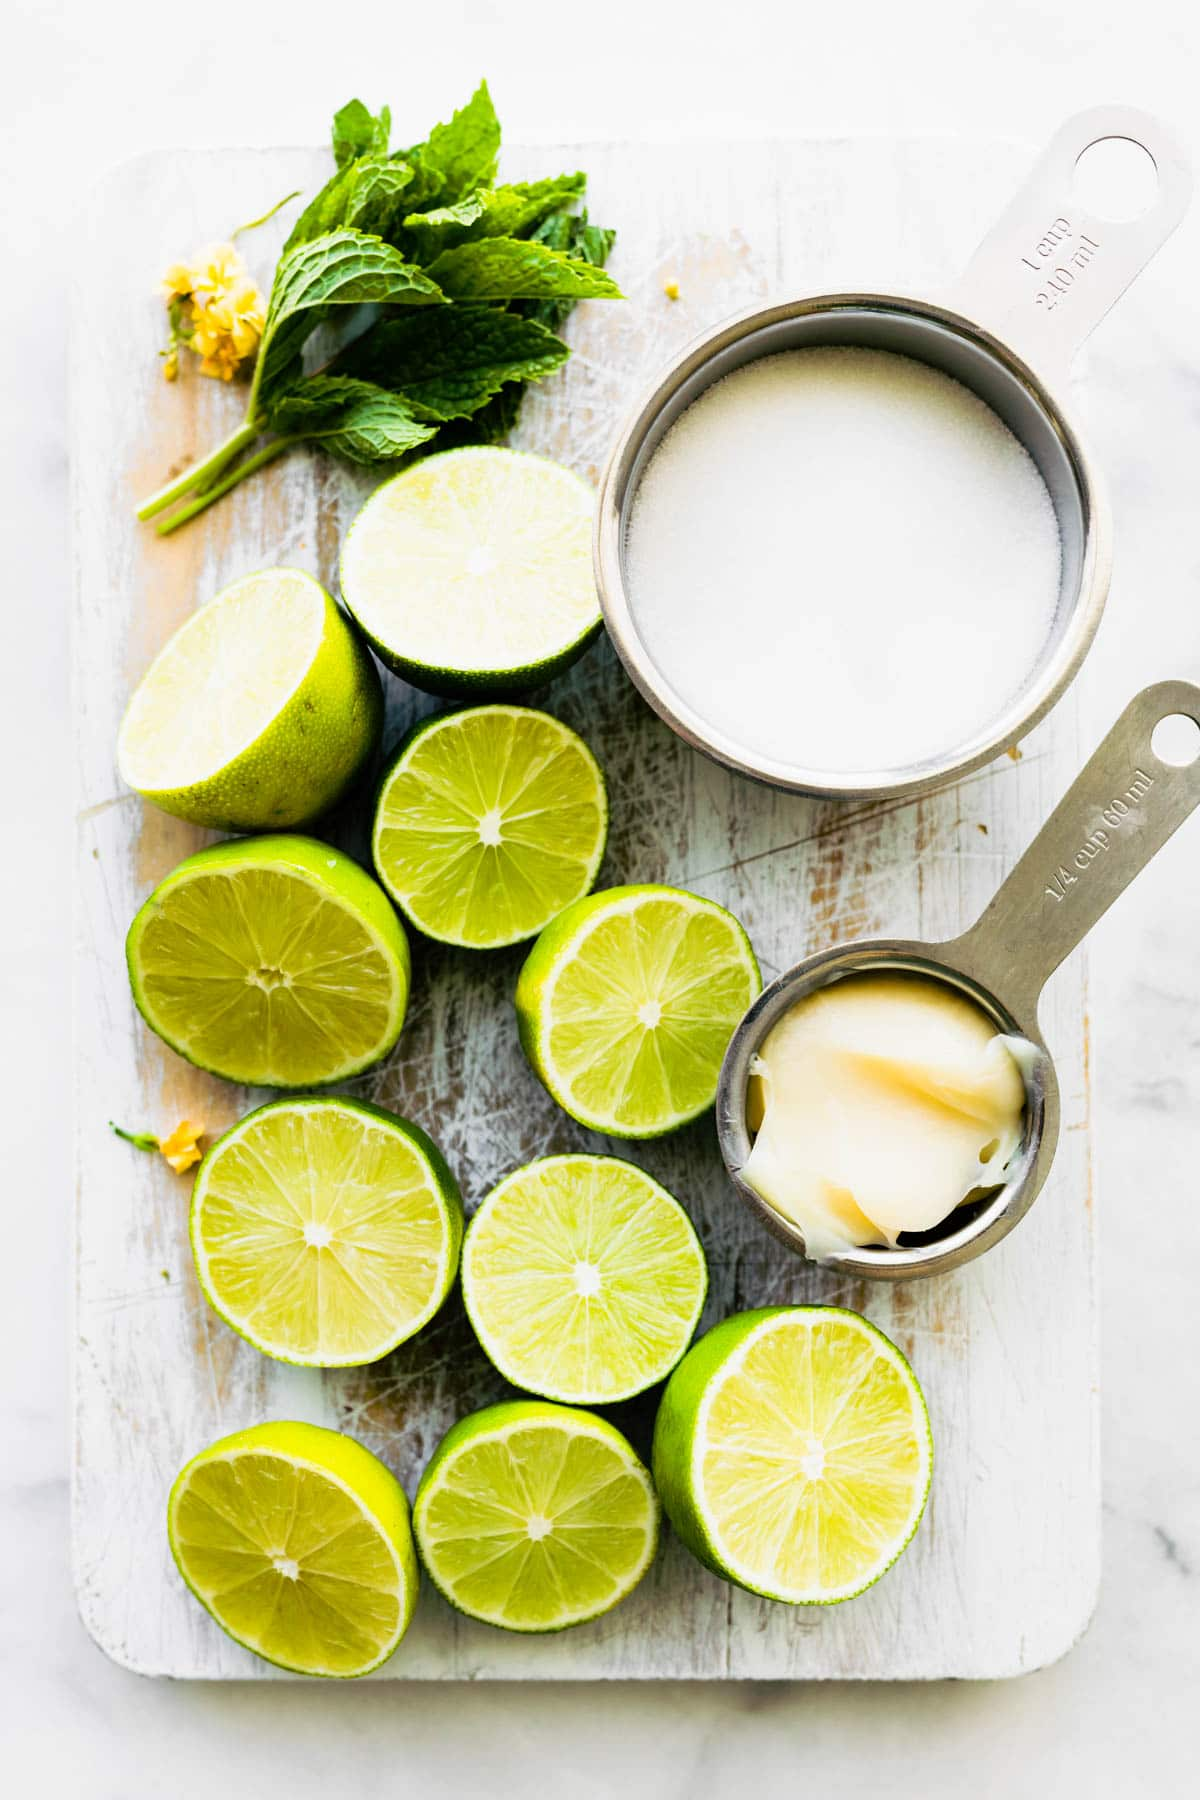 overhead photo: vegan condensed milk, fresh mint and limes cut in half on wooden cutting board